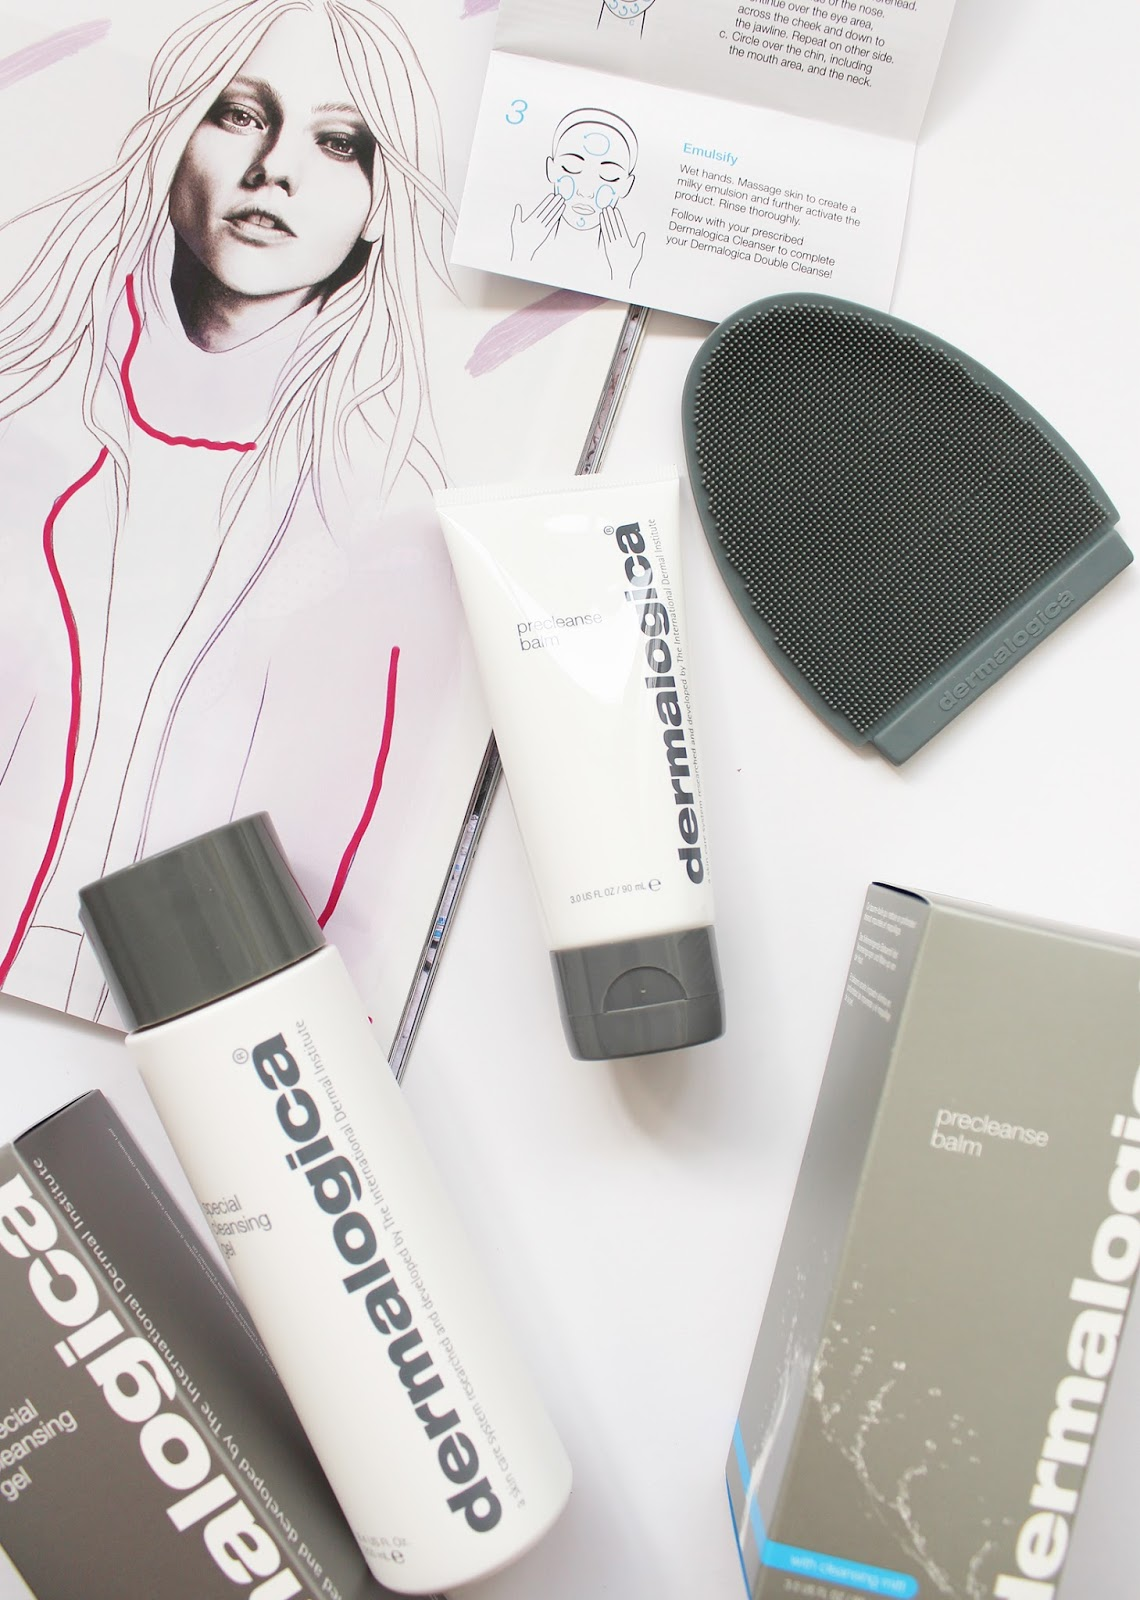 DERMALOGICA | New Pre Cleanse Balm - Review - CassandraMyee